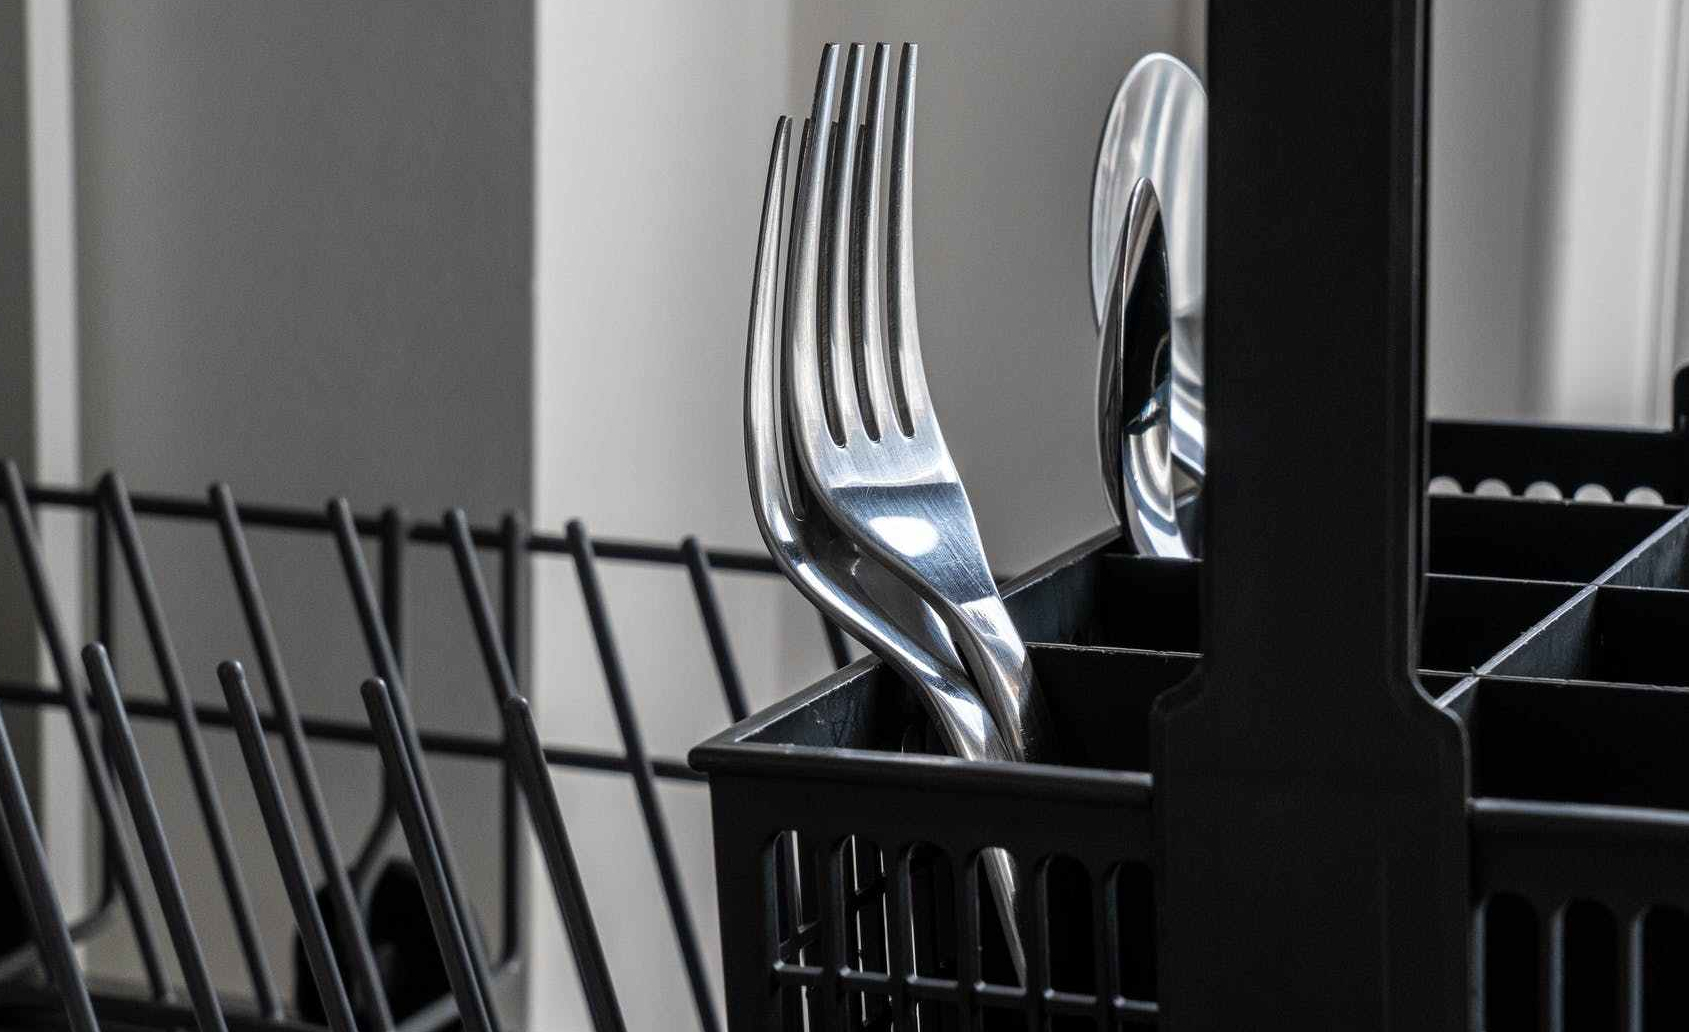 forks and spoons in a dishwasher